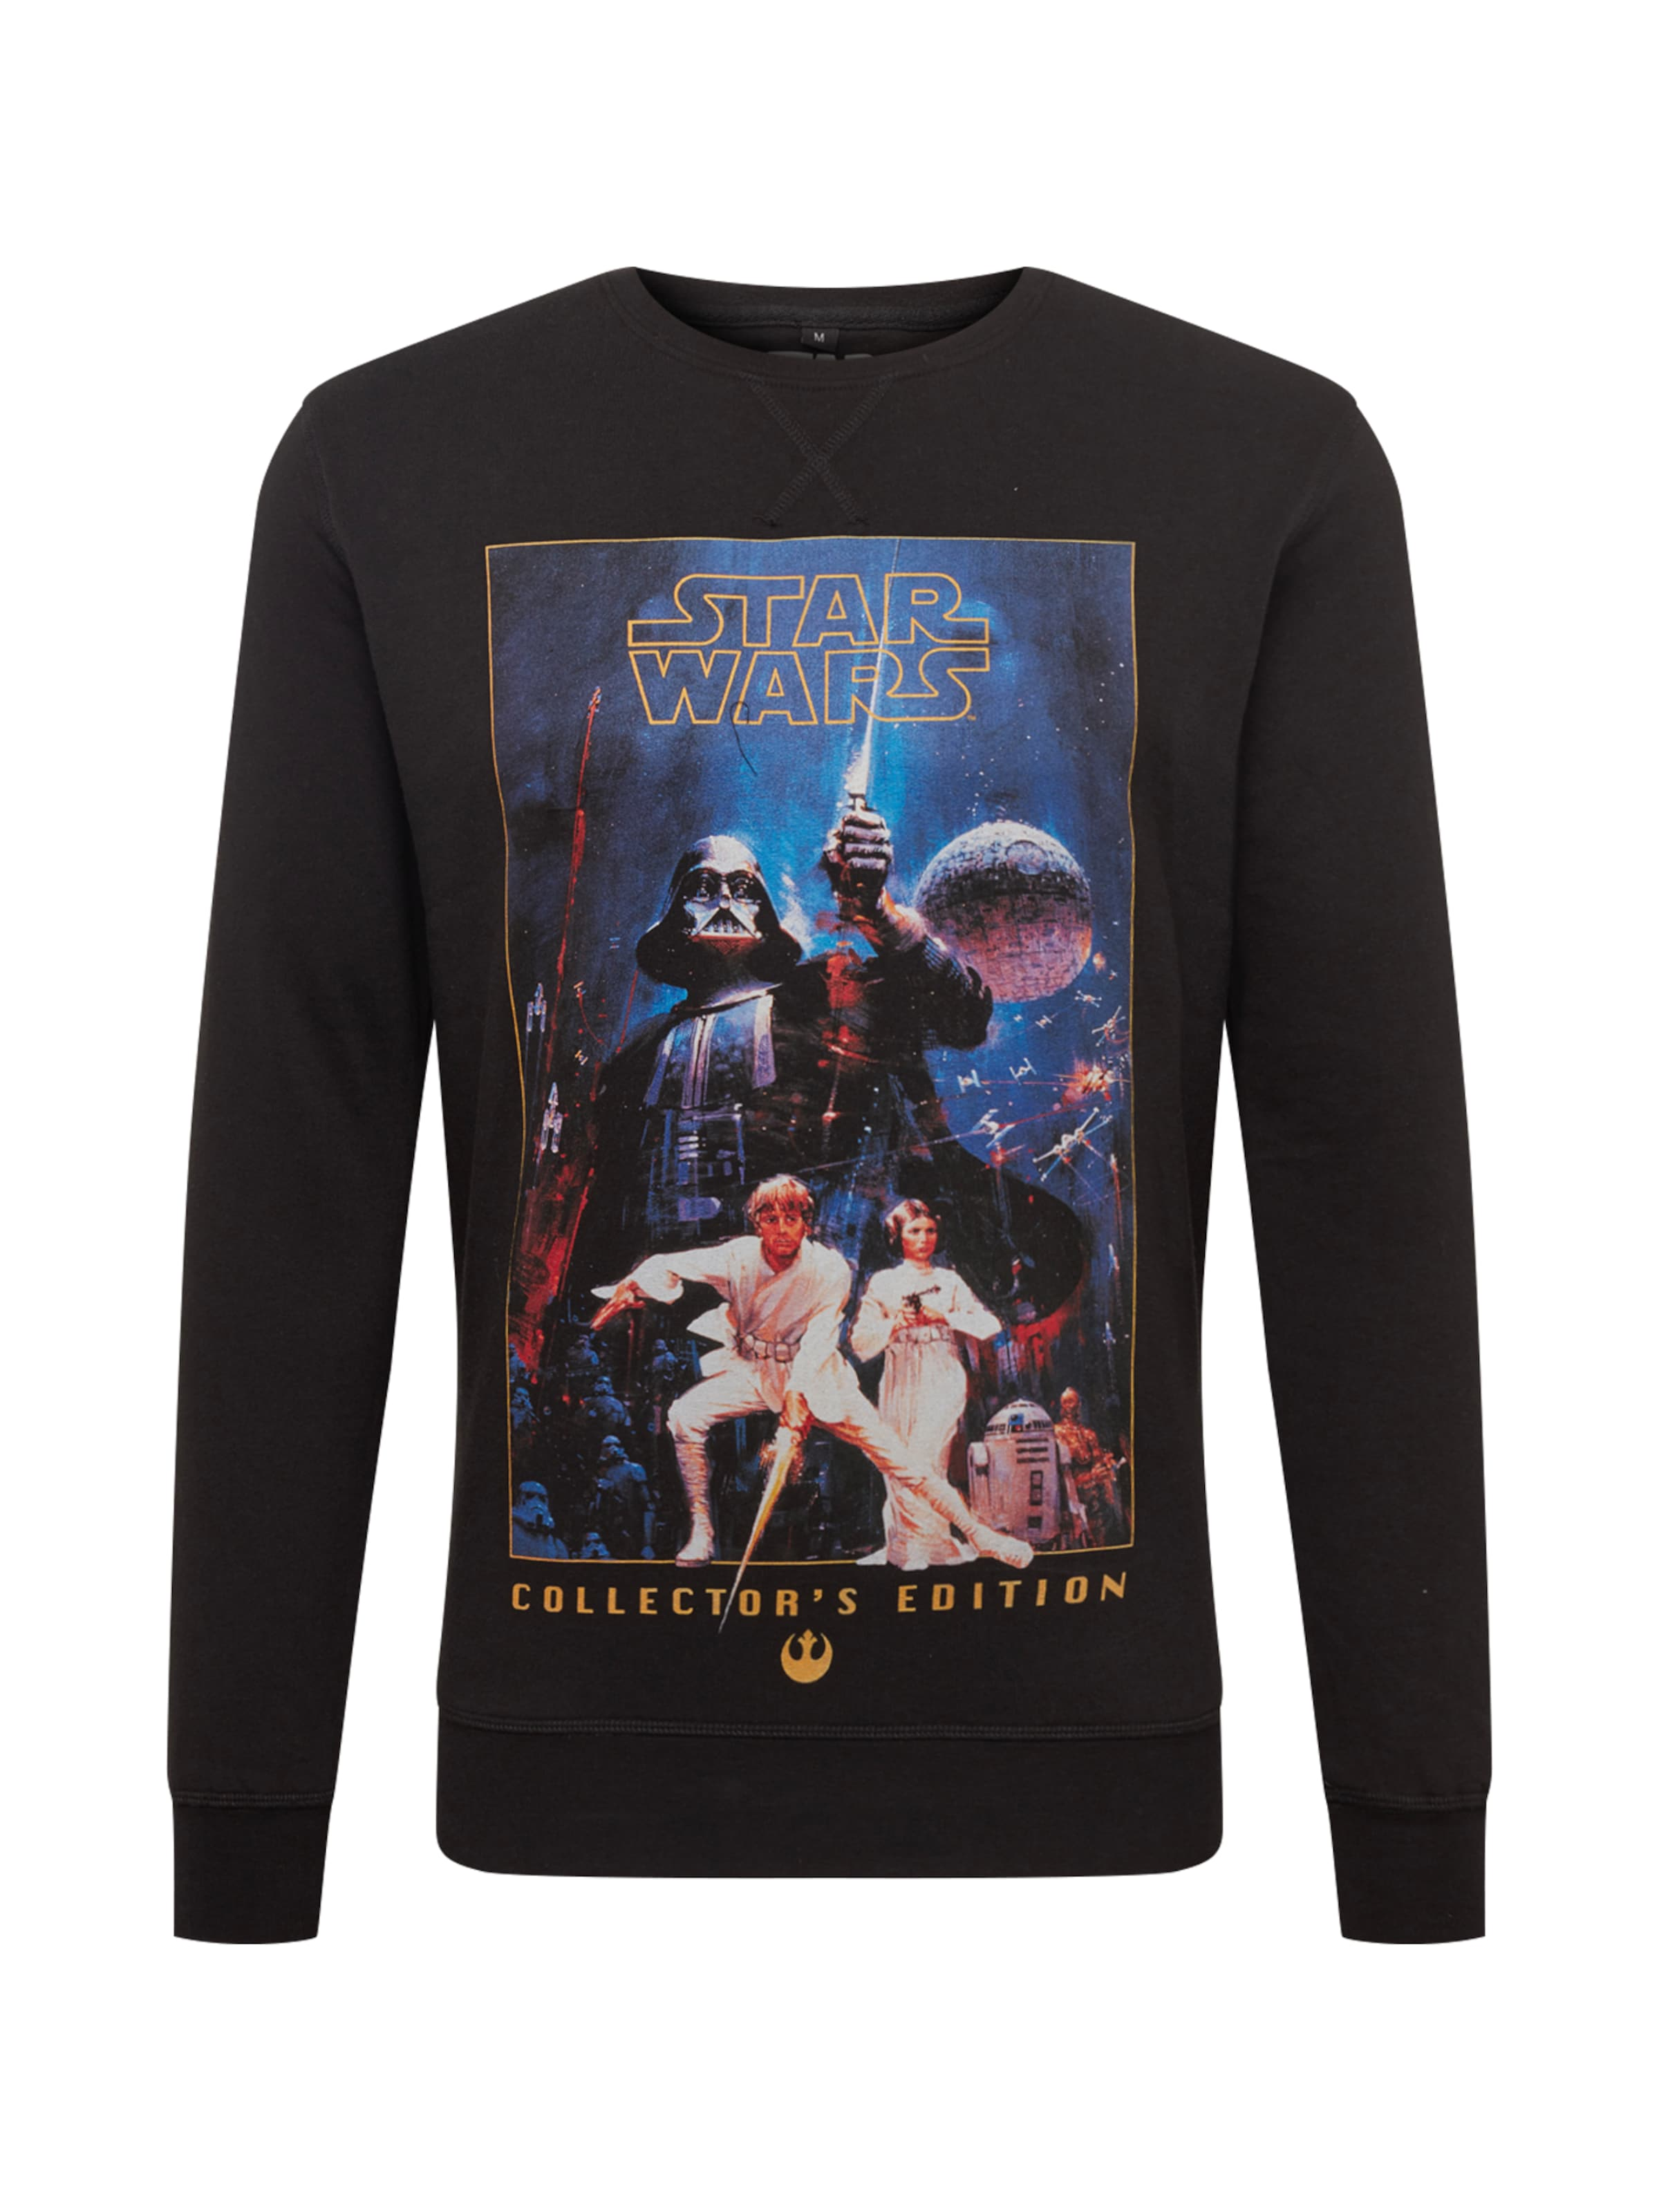 Collectors Tee BlauSchwarz Poster Wars Shirt In 'star Edition Mister Crewneck' TJculFK13